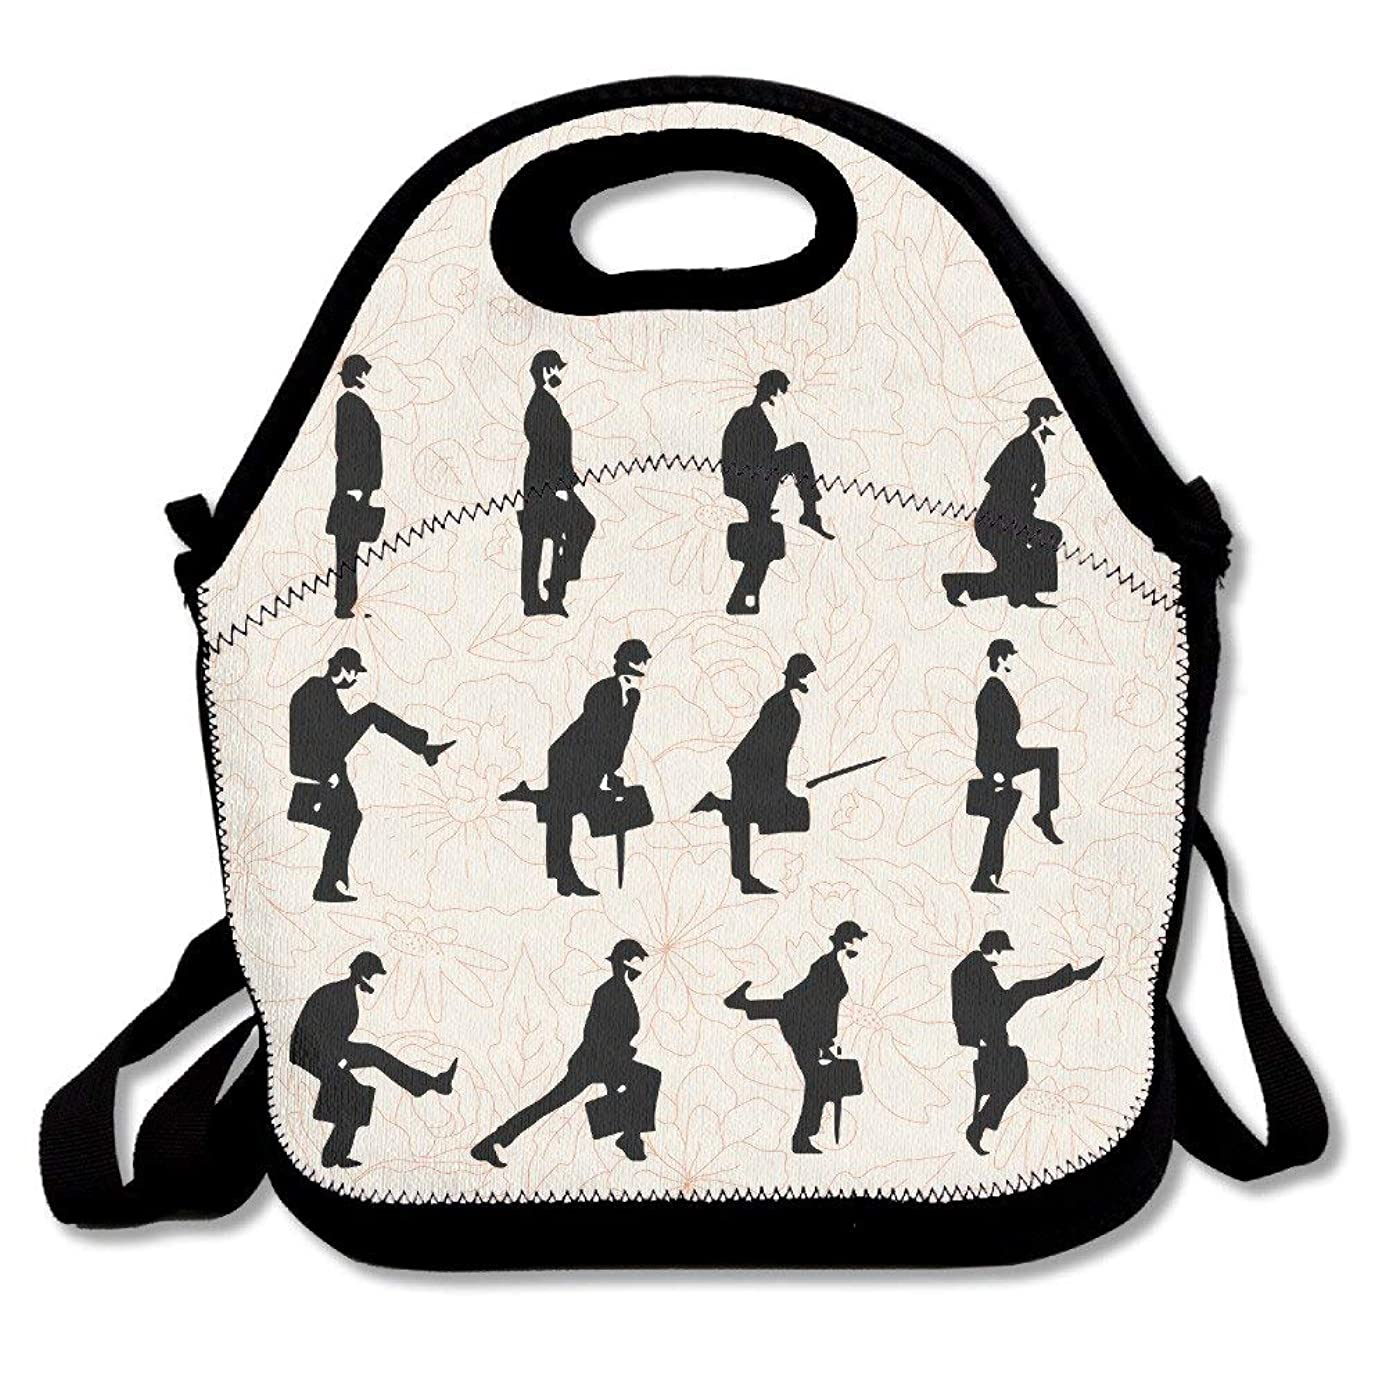 Monty Python Silly Walk Insulated Neoprene Lunch Bag Tote Handbag lunchbox Food Container Gourmet Tote Cooler warm Pouch For School work Office oqa7738587